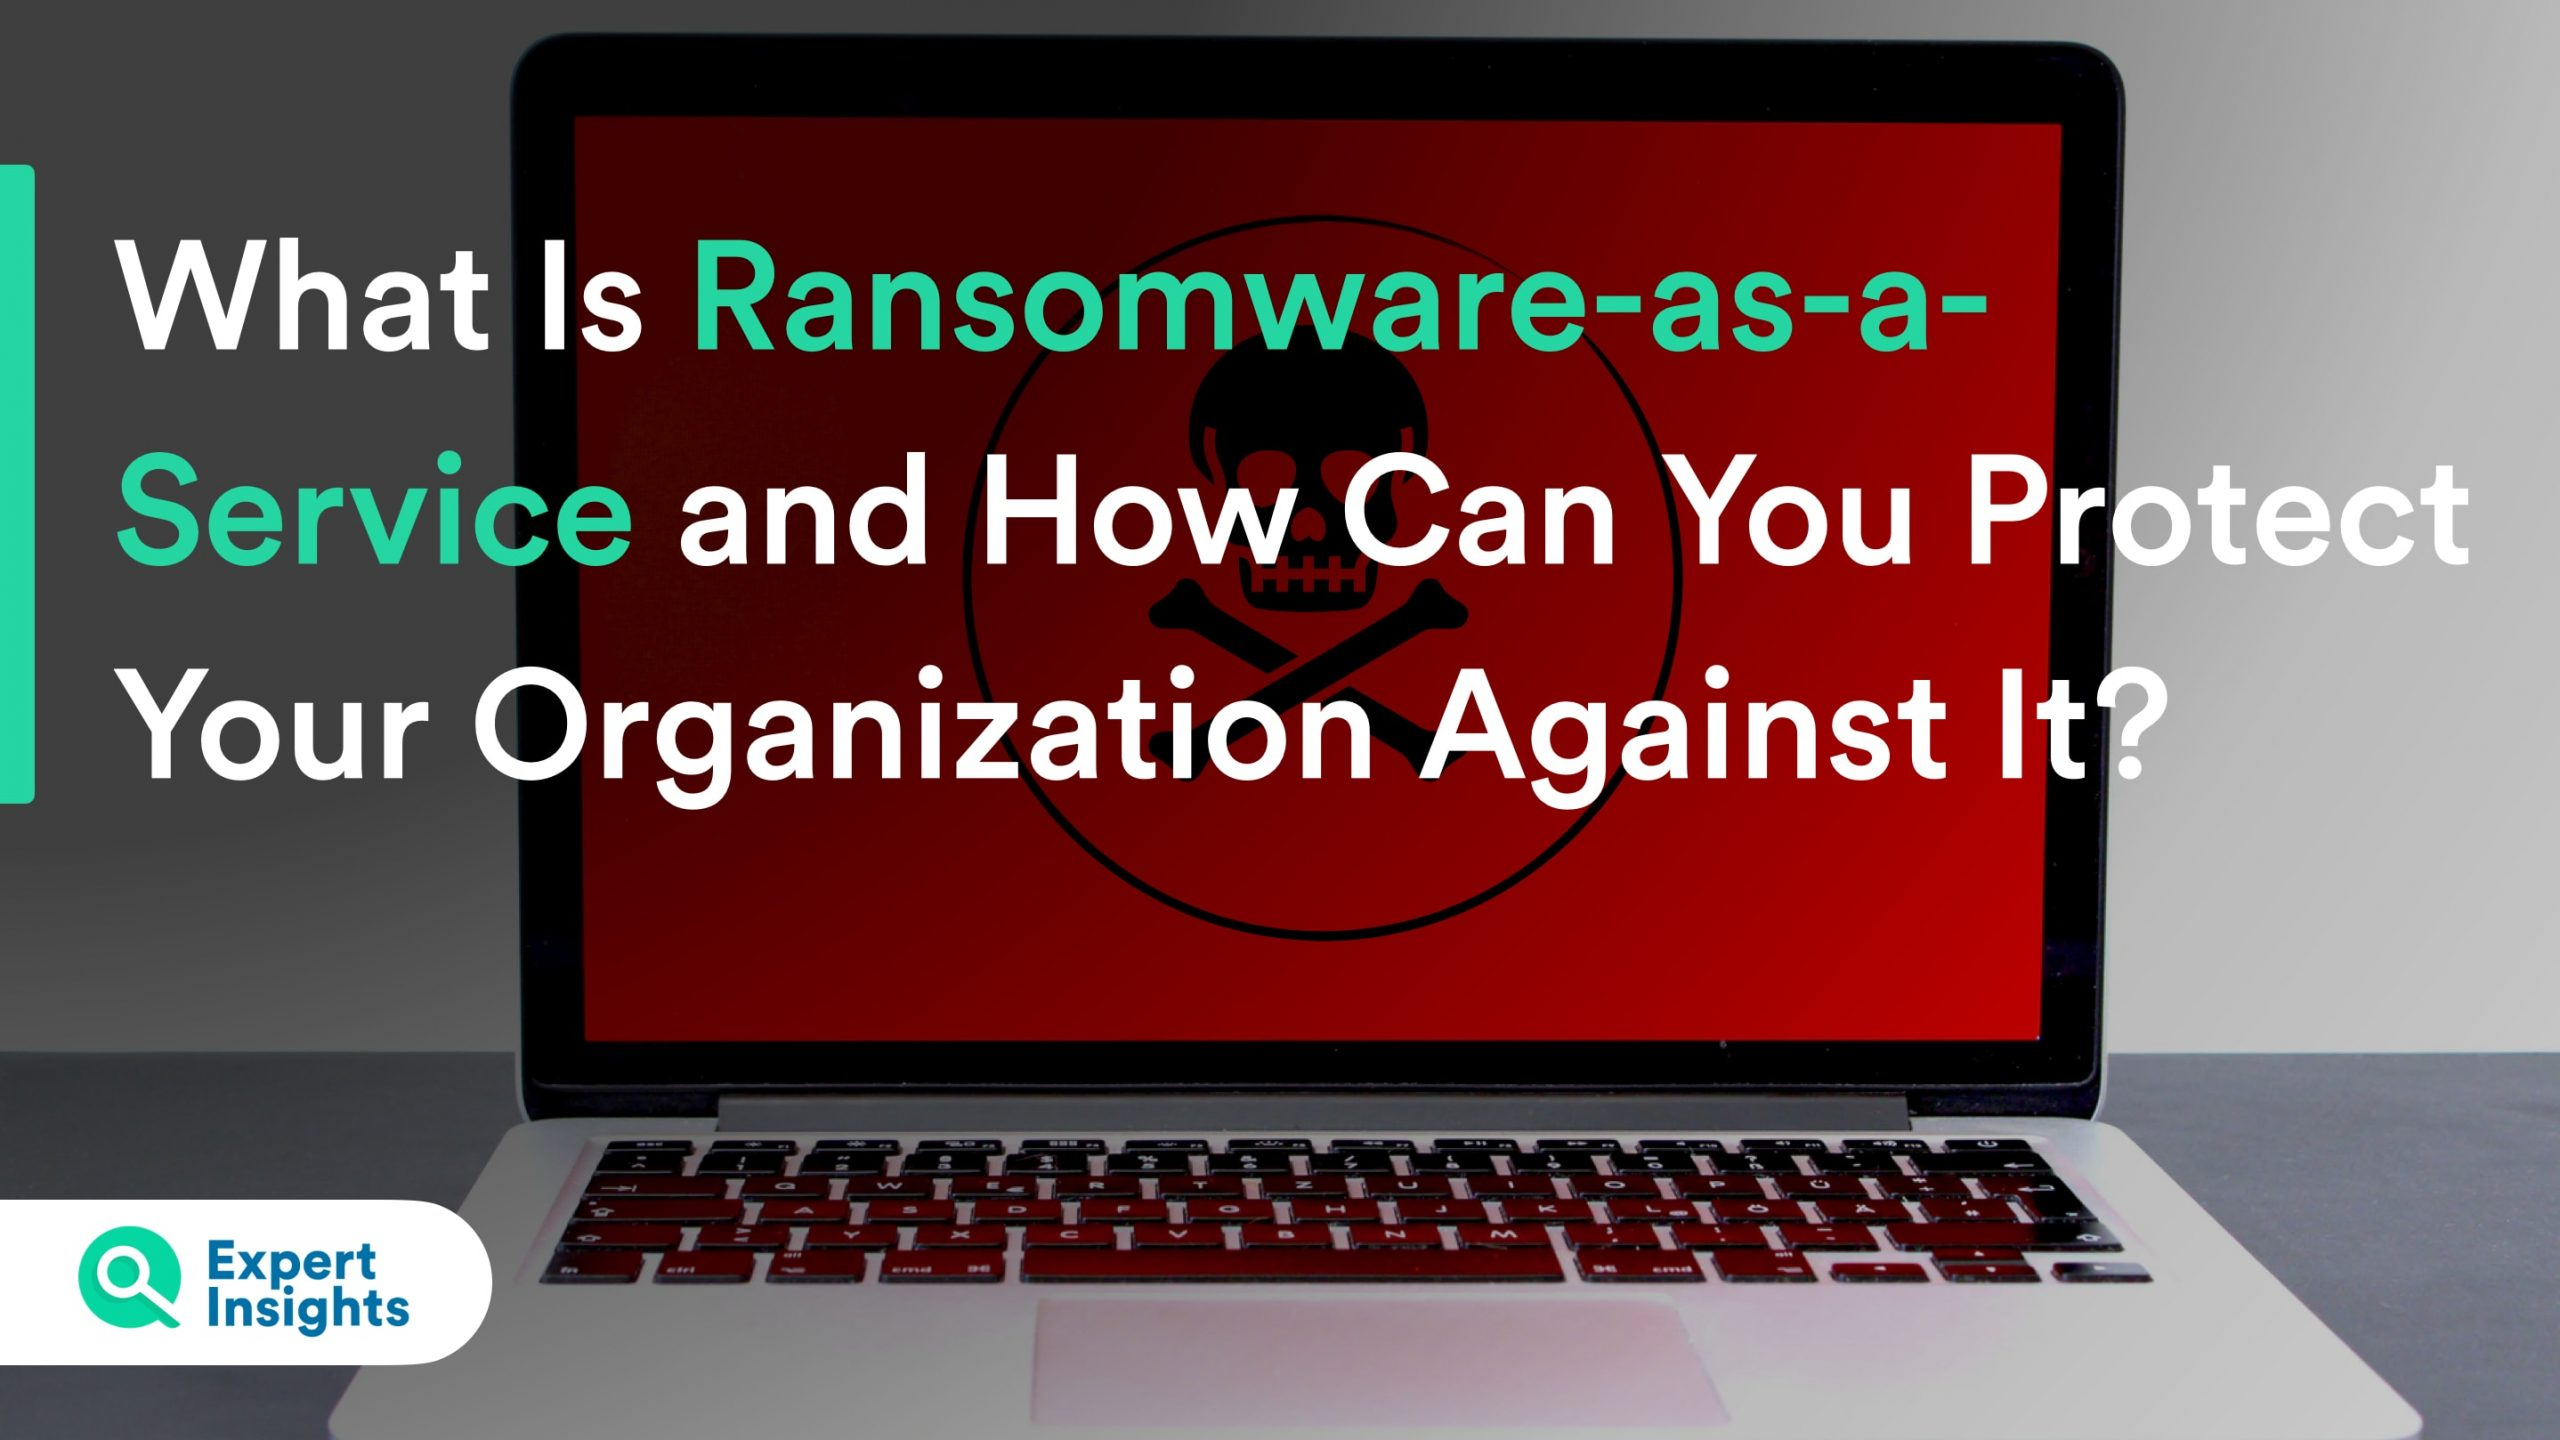 What is Ransomware as a Service and how can you protect your organization against it?